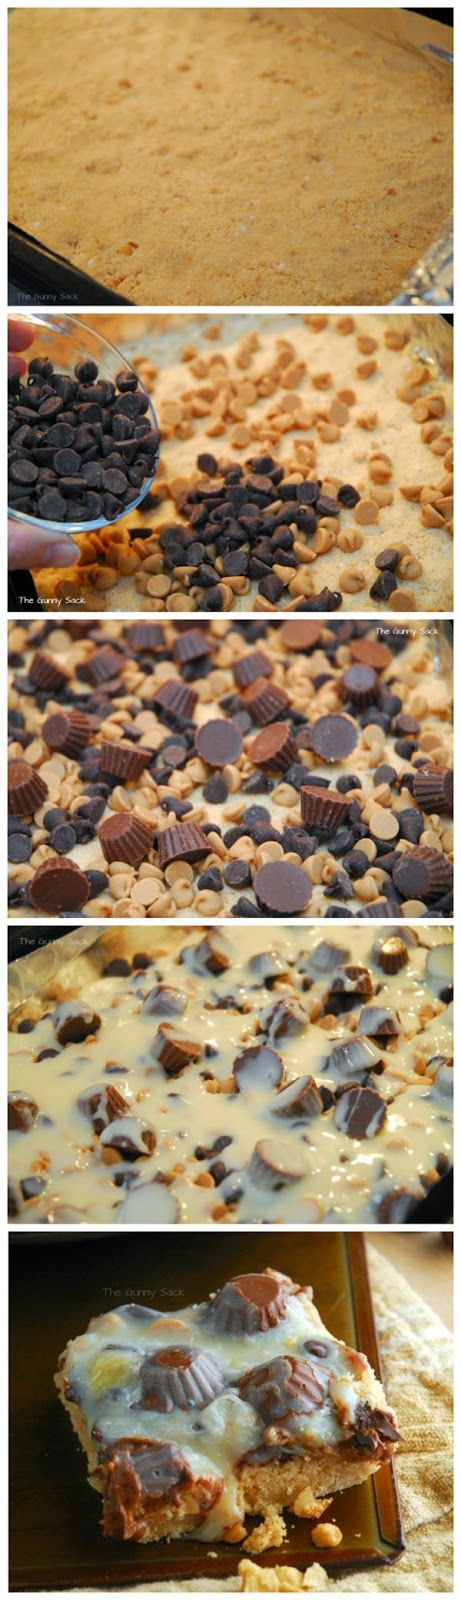 Reese's Peanut Butter Cup Cookie Bars!!!!